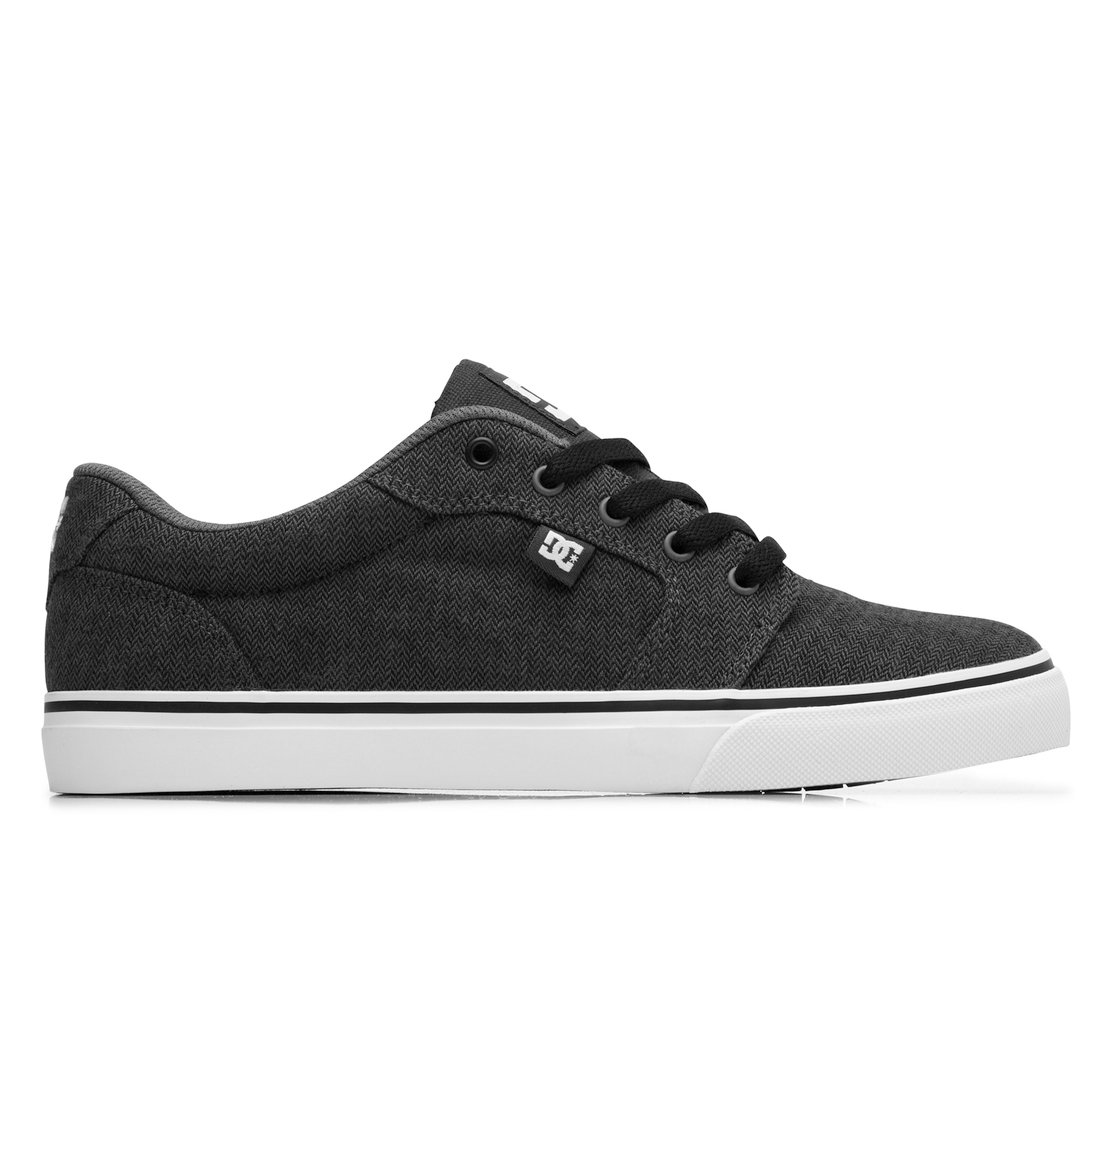 DC Shoes Tonik Se - Low-Top Shoes - Zapatillas Bajas - Hombre - EU 43 QiS1q